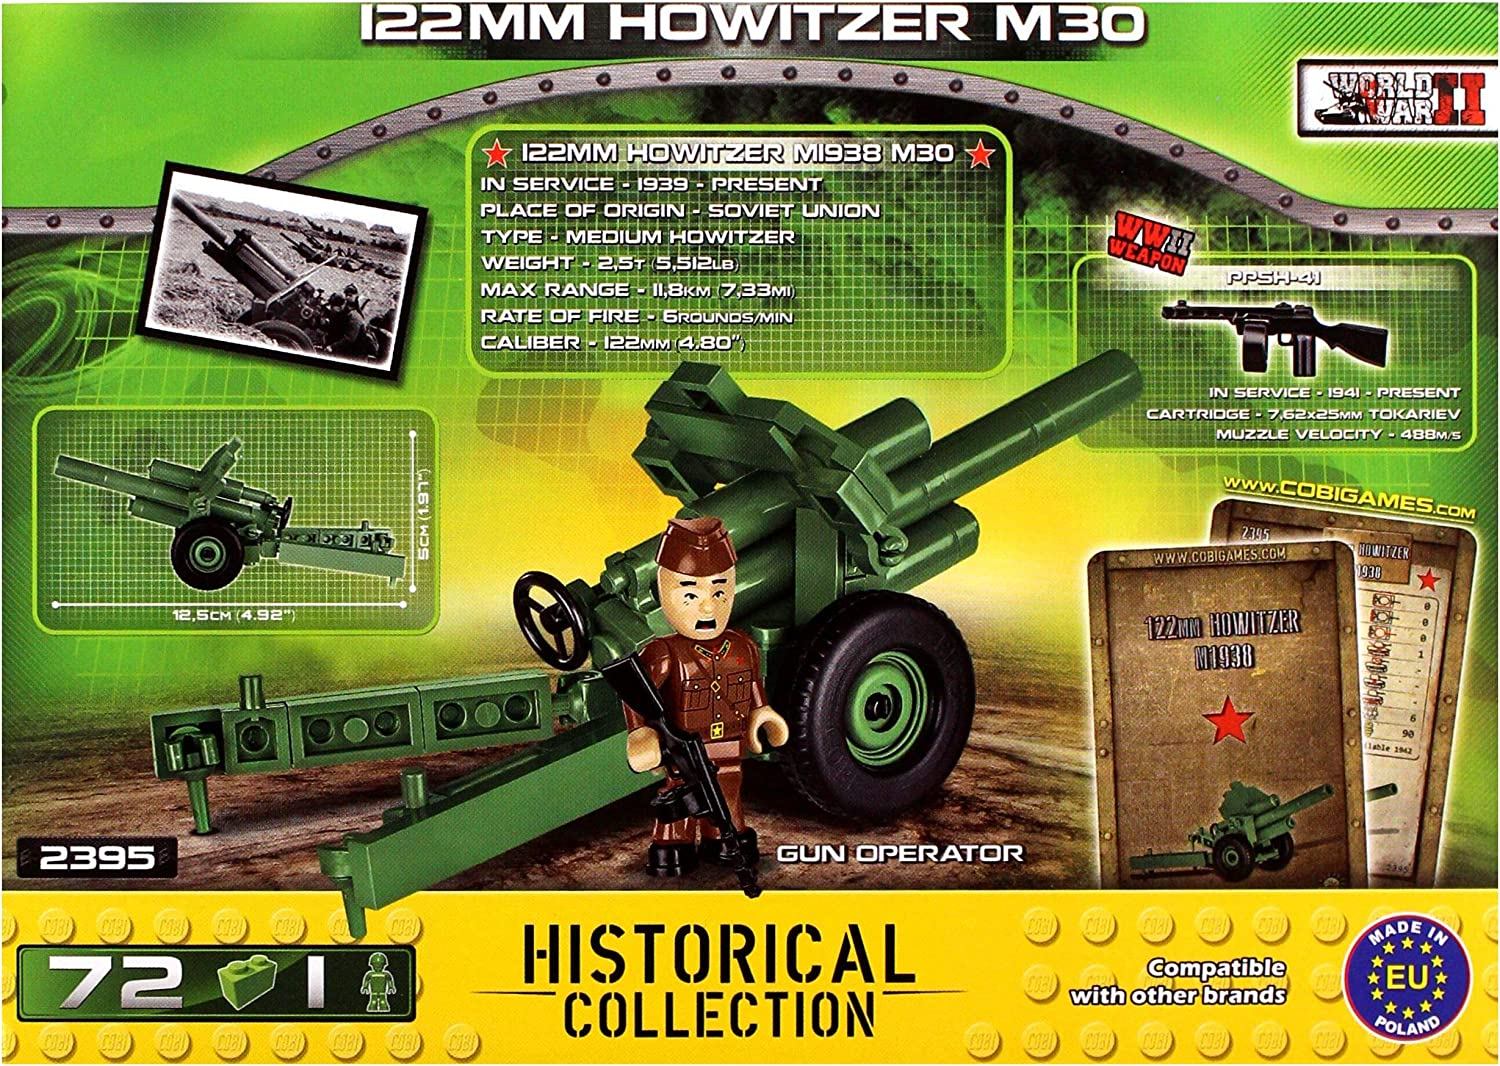 COBI Historical Collection 122mm Howitzer M30 Green